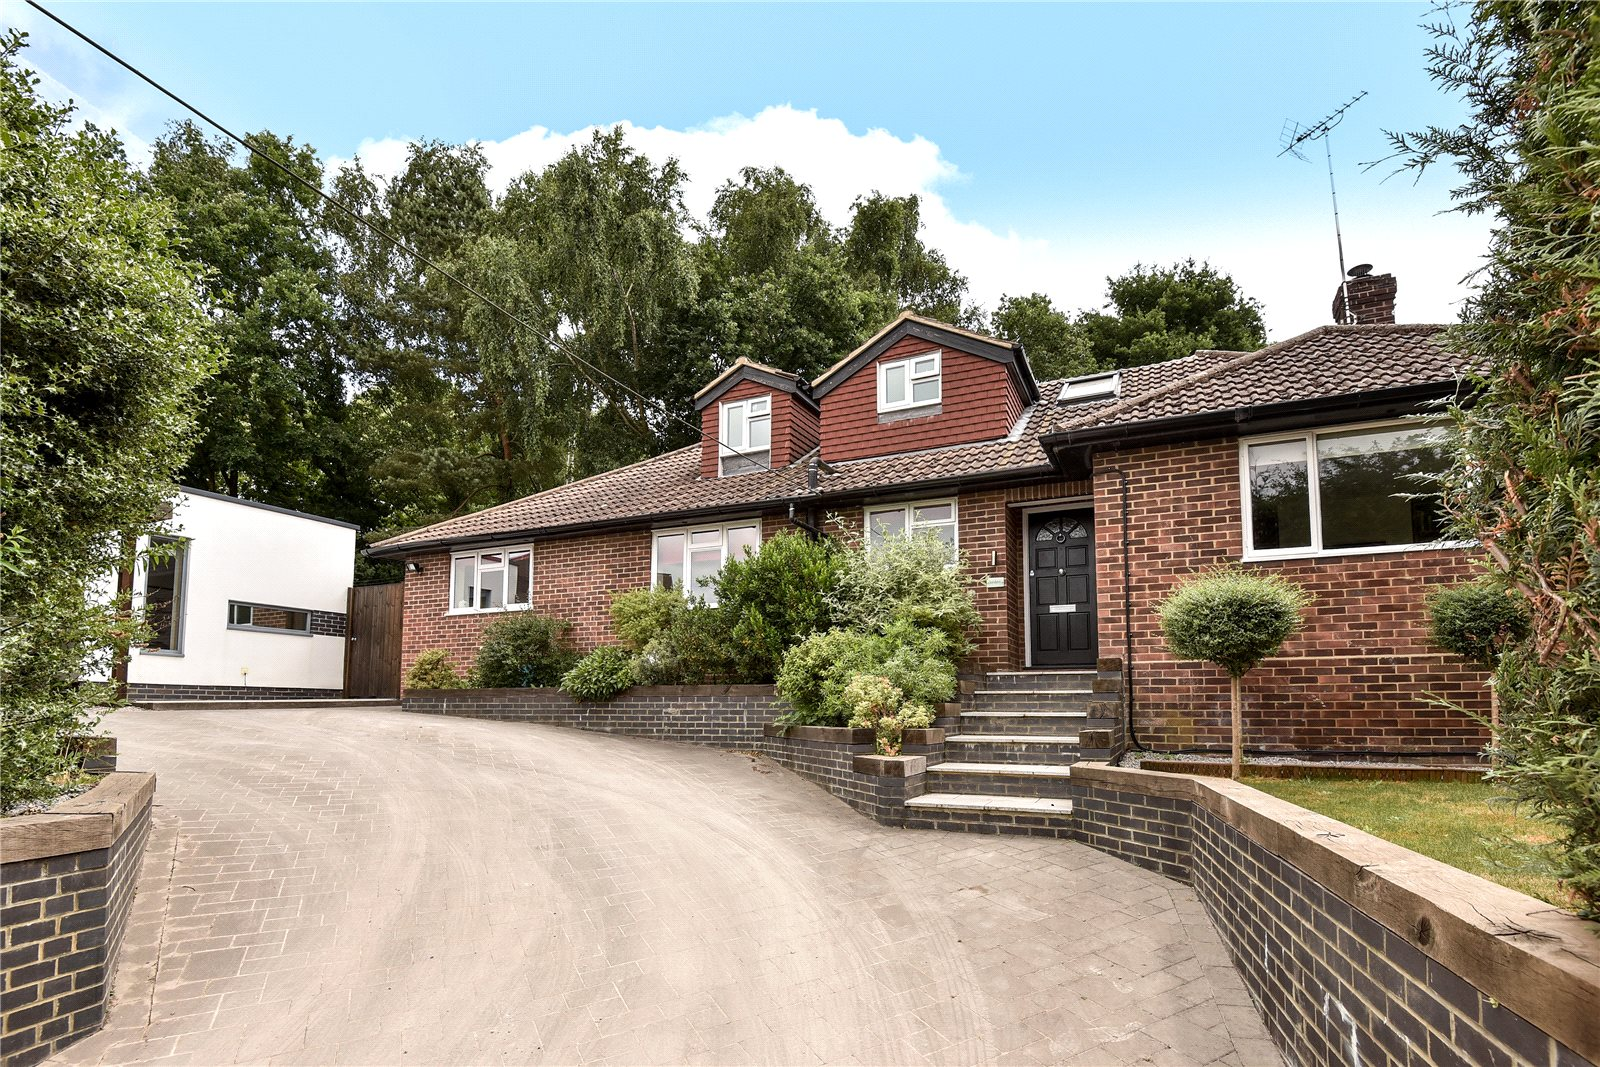 4 Bedrooms Detached Bungalow for sale in Sunray Estate, Sandhurst, Berkshire, GU47